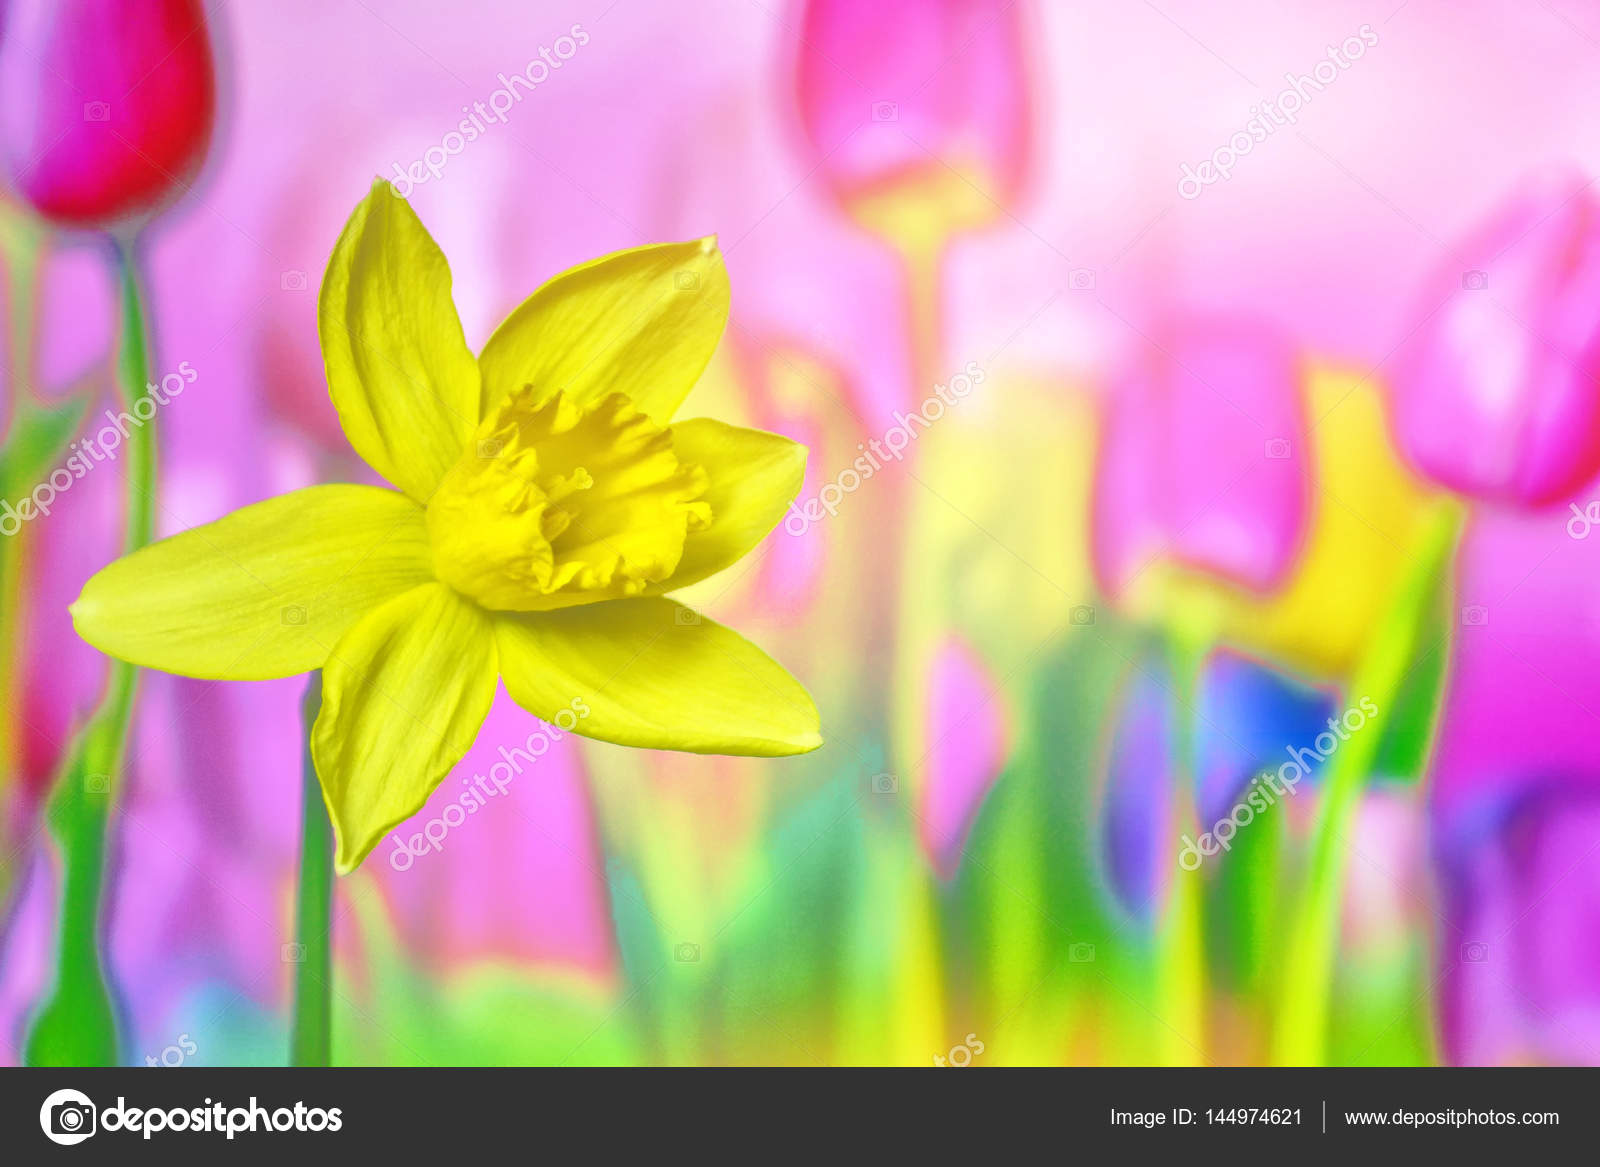 Bright and colorful spring flowers daffodils and tulips stock bright and colorful spring flowers daffodils and tulips photo by alenalihacheva mightylinksfo